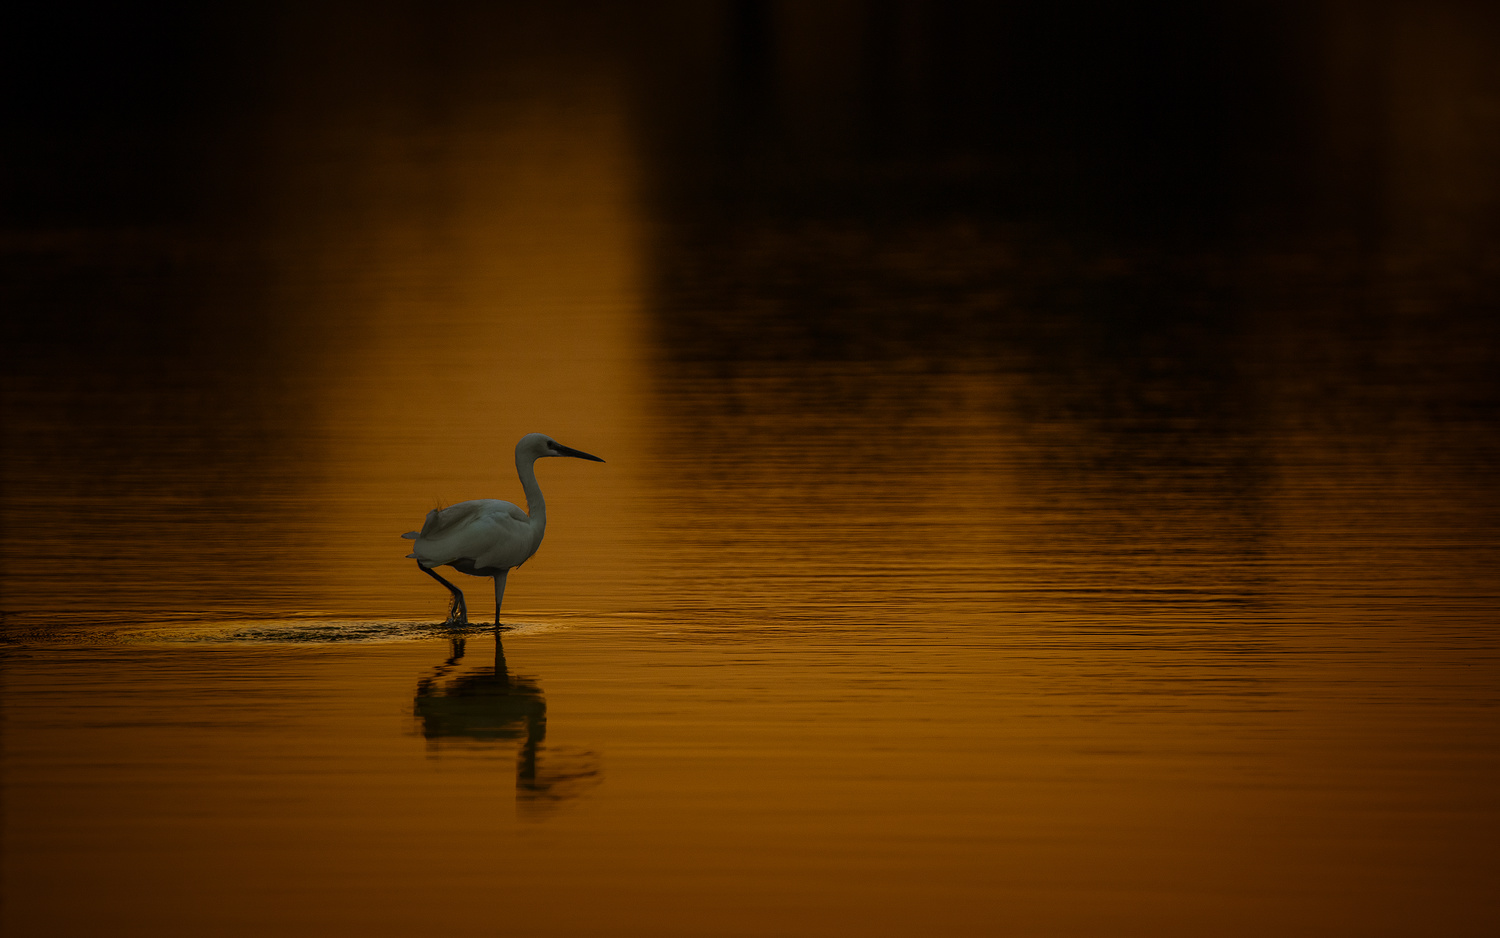 Only & Lonely by Babar Swaleheen